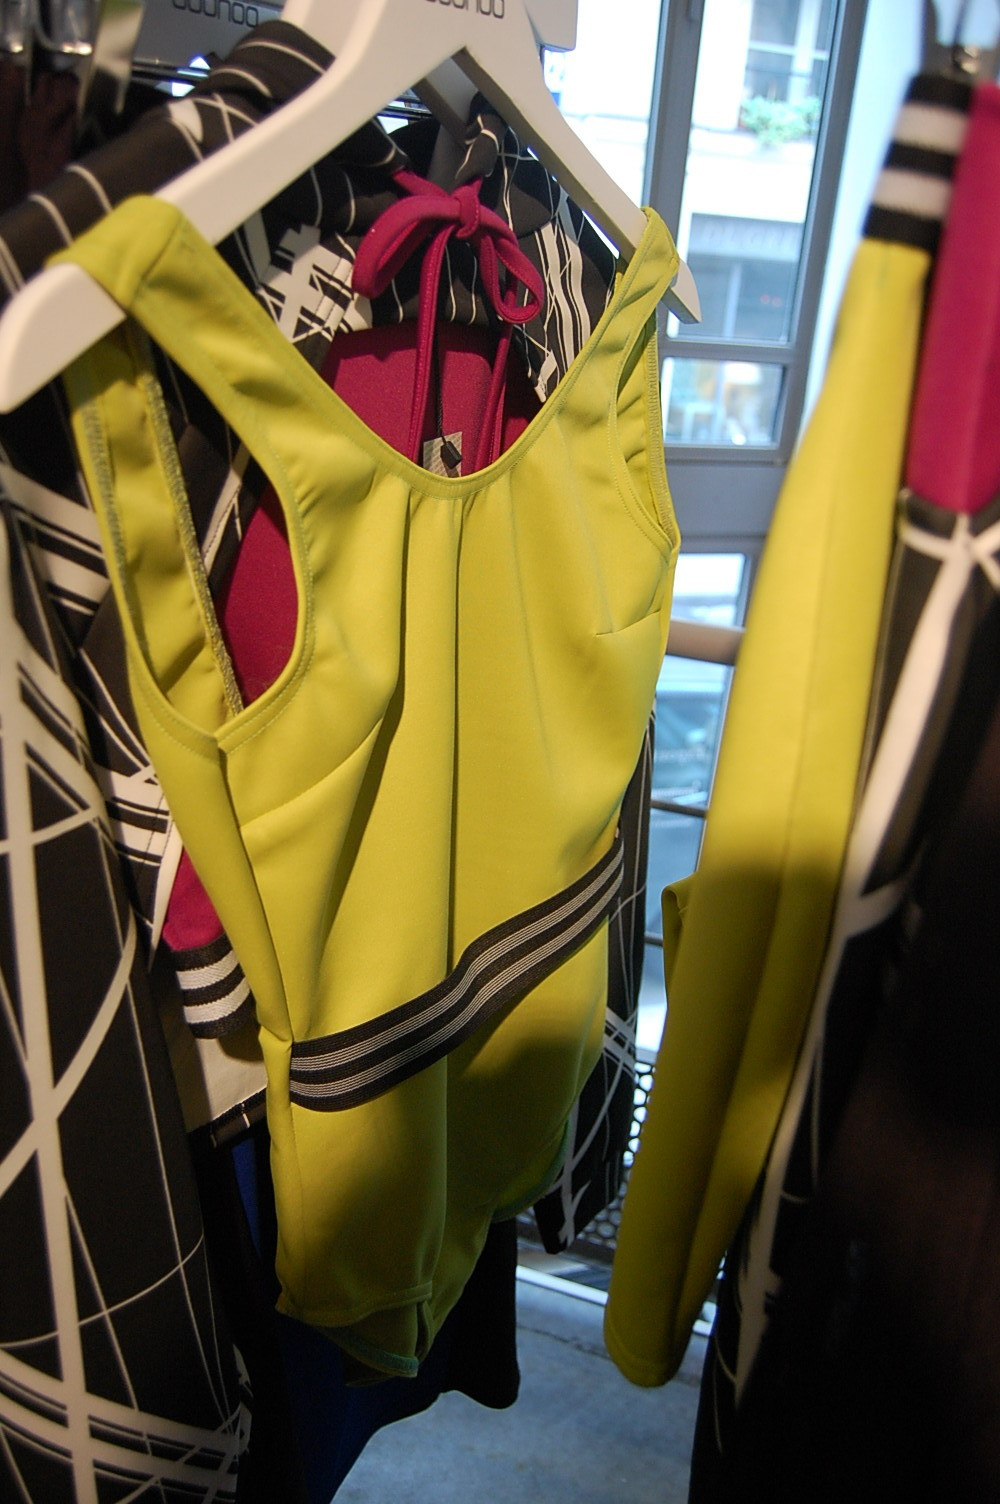 BOOHOO.COM BLOG MODE MARSEILLE FEMME RONDE PIERRE HENRY BOR PROJET FASHION CURVY CURLY CLOSET MAILLOT BODY JAUNE FLUO